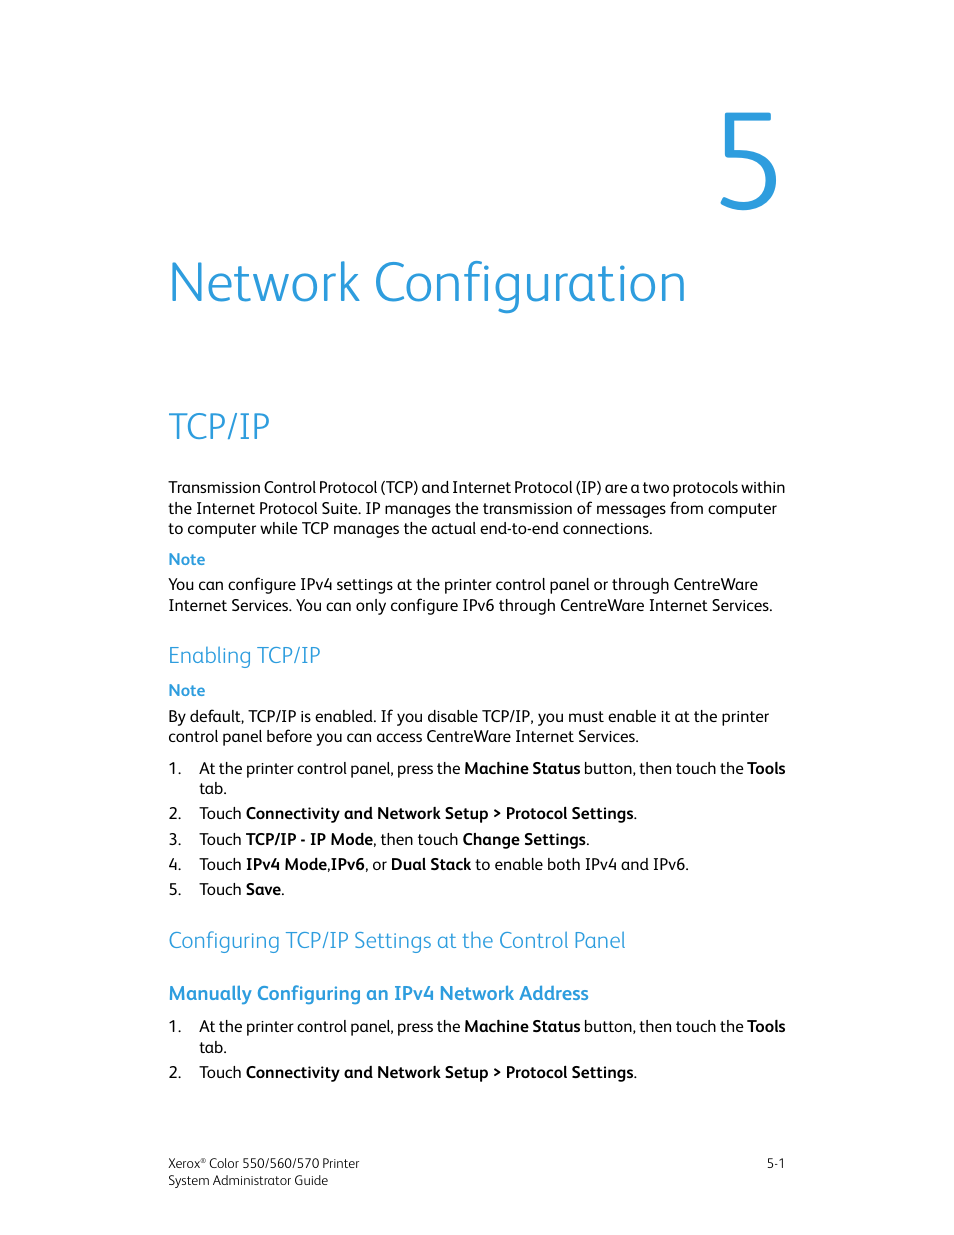 Network configuration, Tcp/ip, Enabling tcp/ip | Xerox Color 550-560